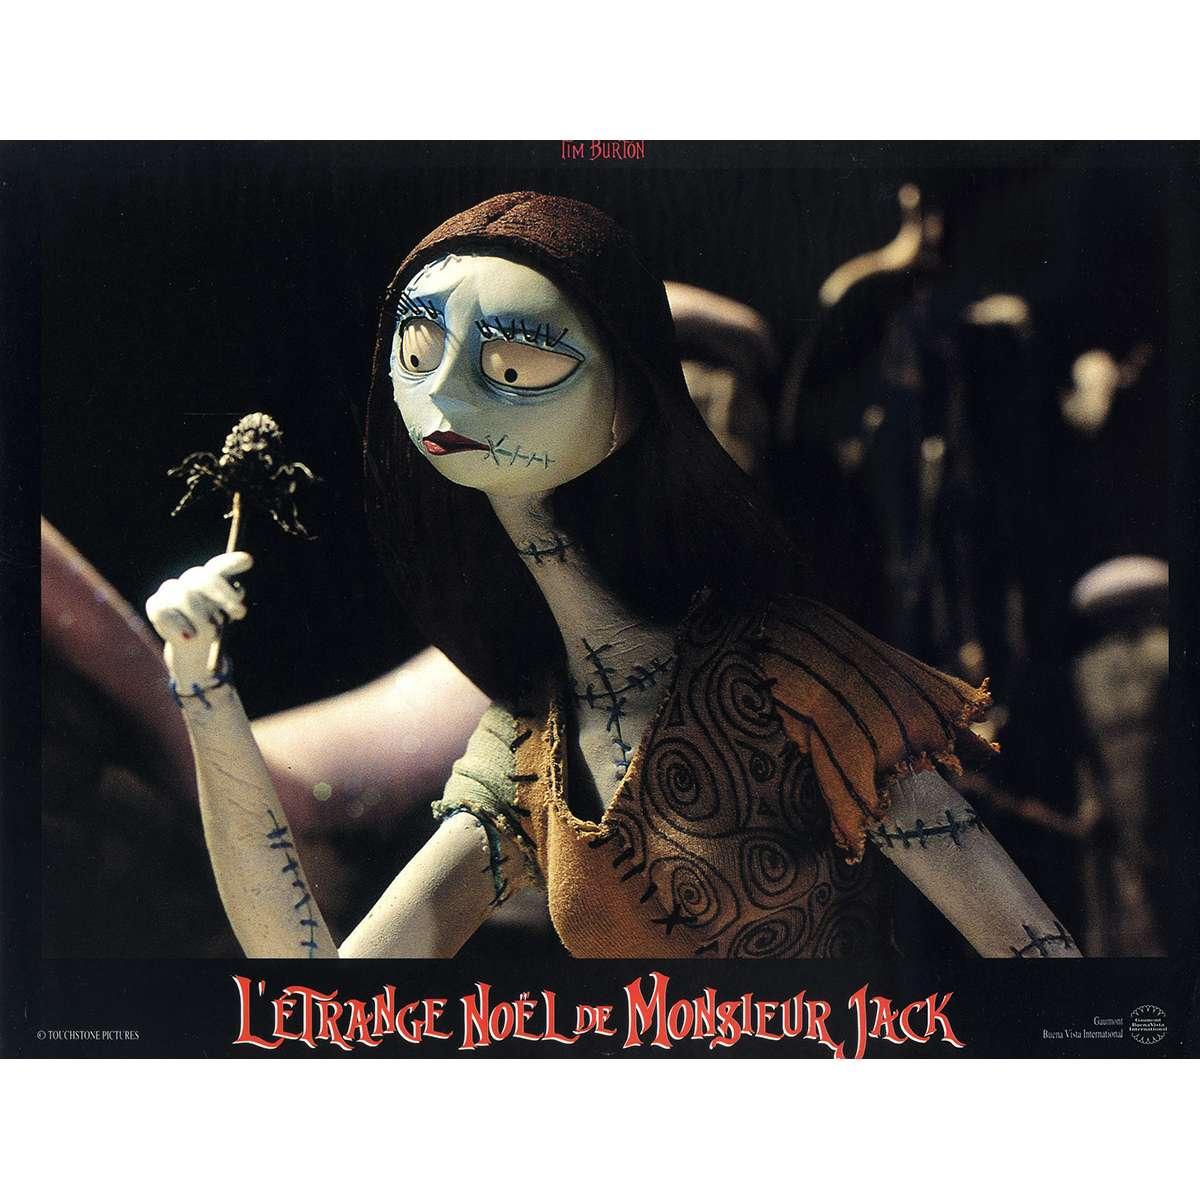 Nightmare Before Christmas In French.The Nightmare Before Christmas Original Lobby Card N03 9x12 In 1993 Tim Burton Danny Elfman